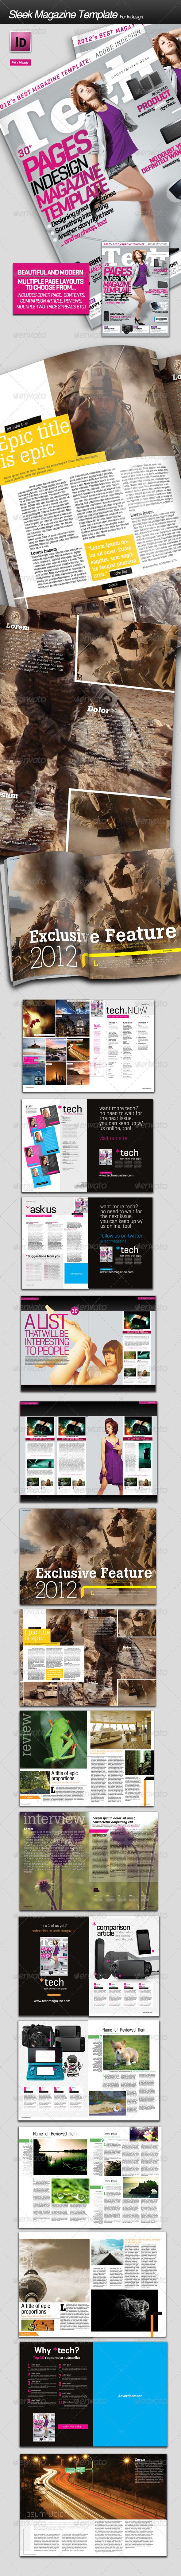 Sleek inDesign Tech Magazine Template  • Only available here ➝ http://graphicriver.net/item/sleek-indesign-tech-magazine-template/1703342?ref=pxcr